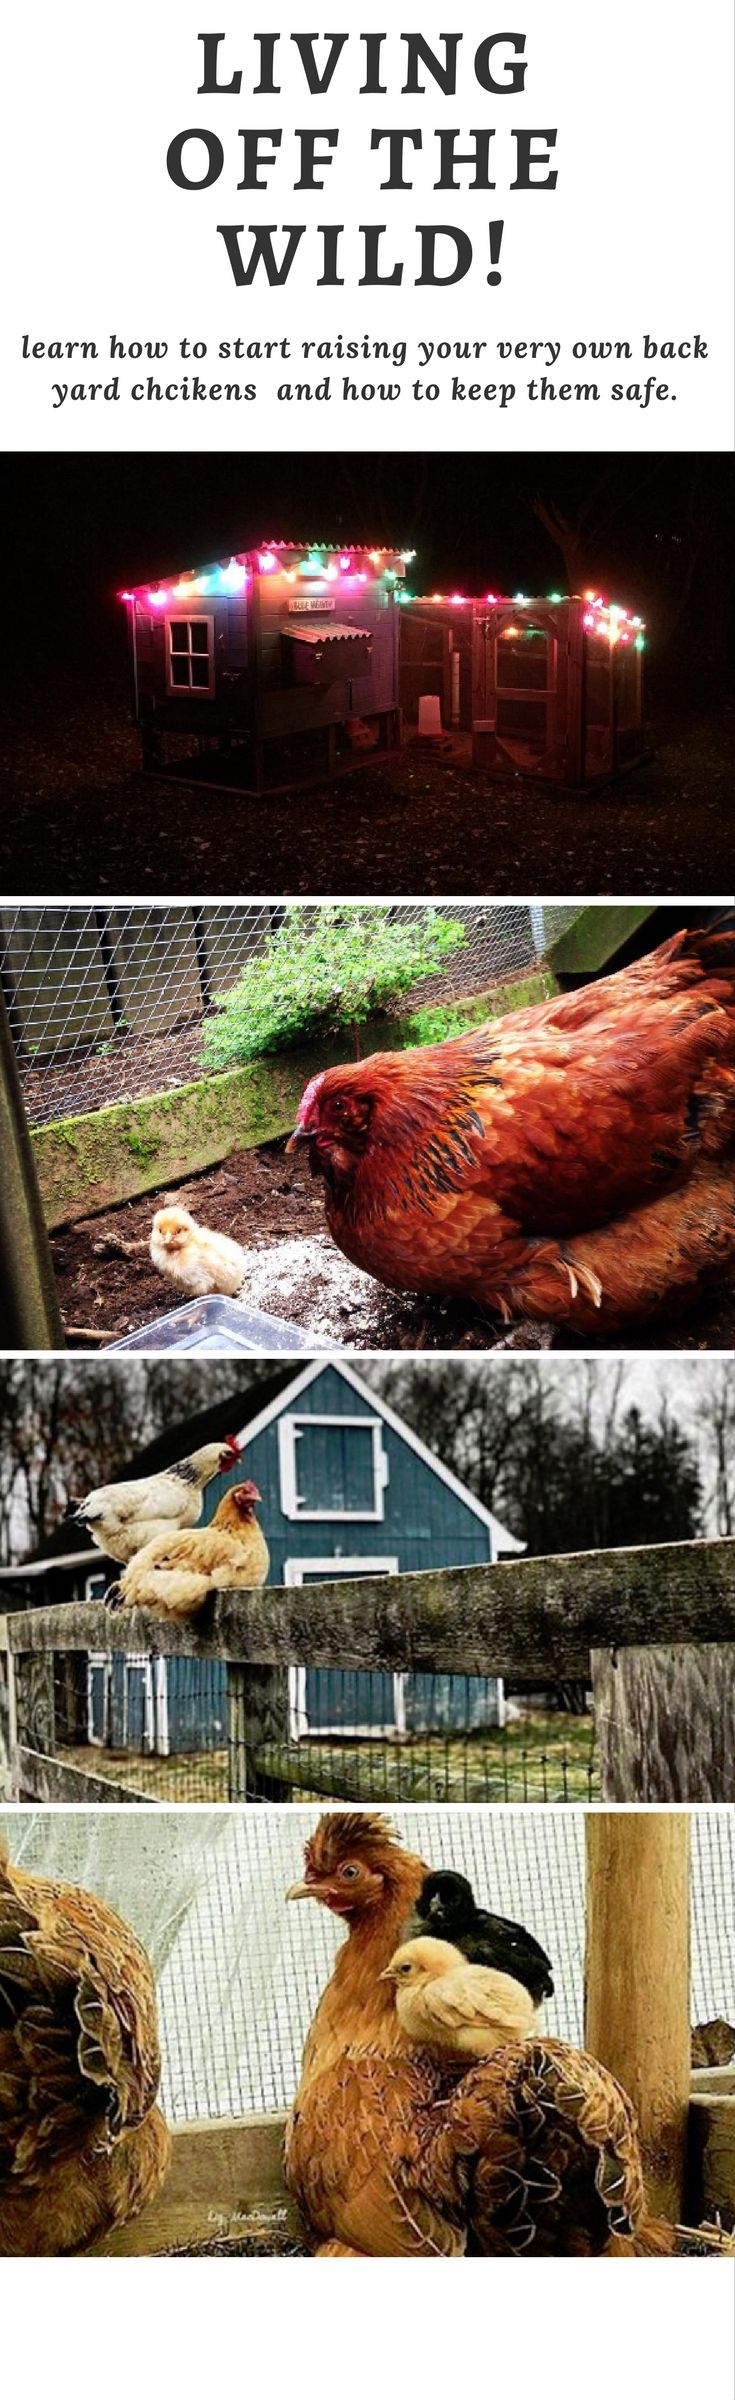 651 best chickens images on pinterest raising chickens backyard